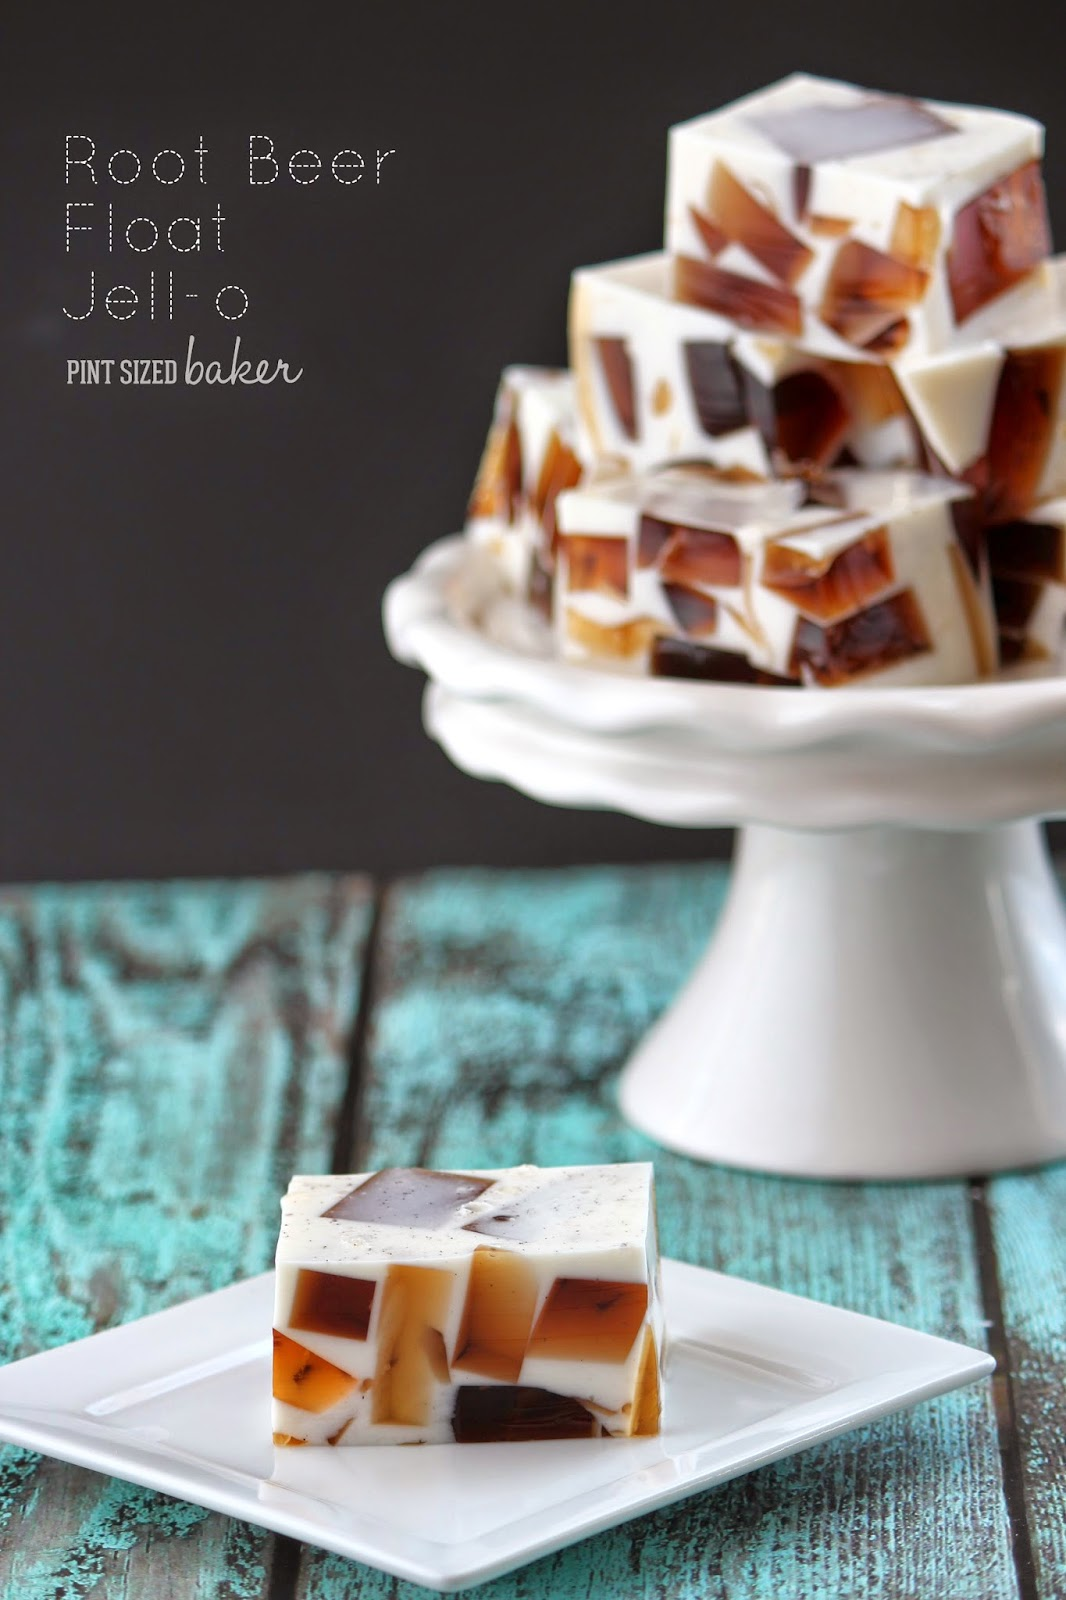 Root Beer Float Jello from Pint Sized Baker